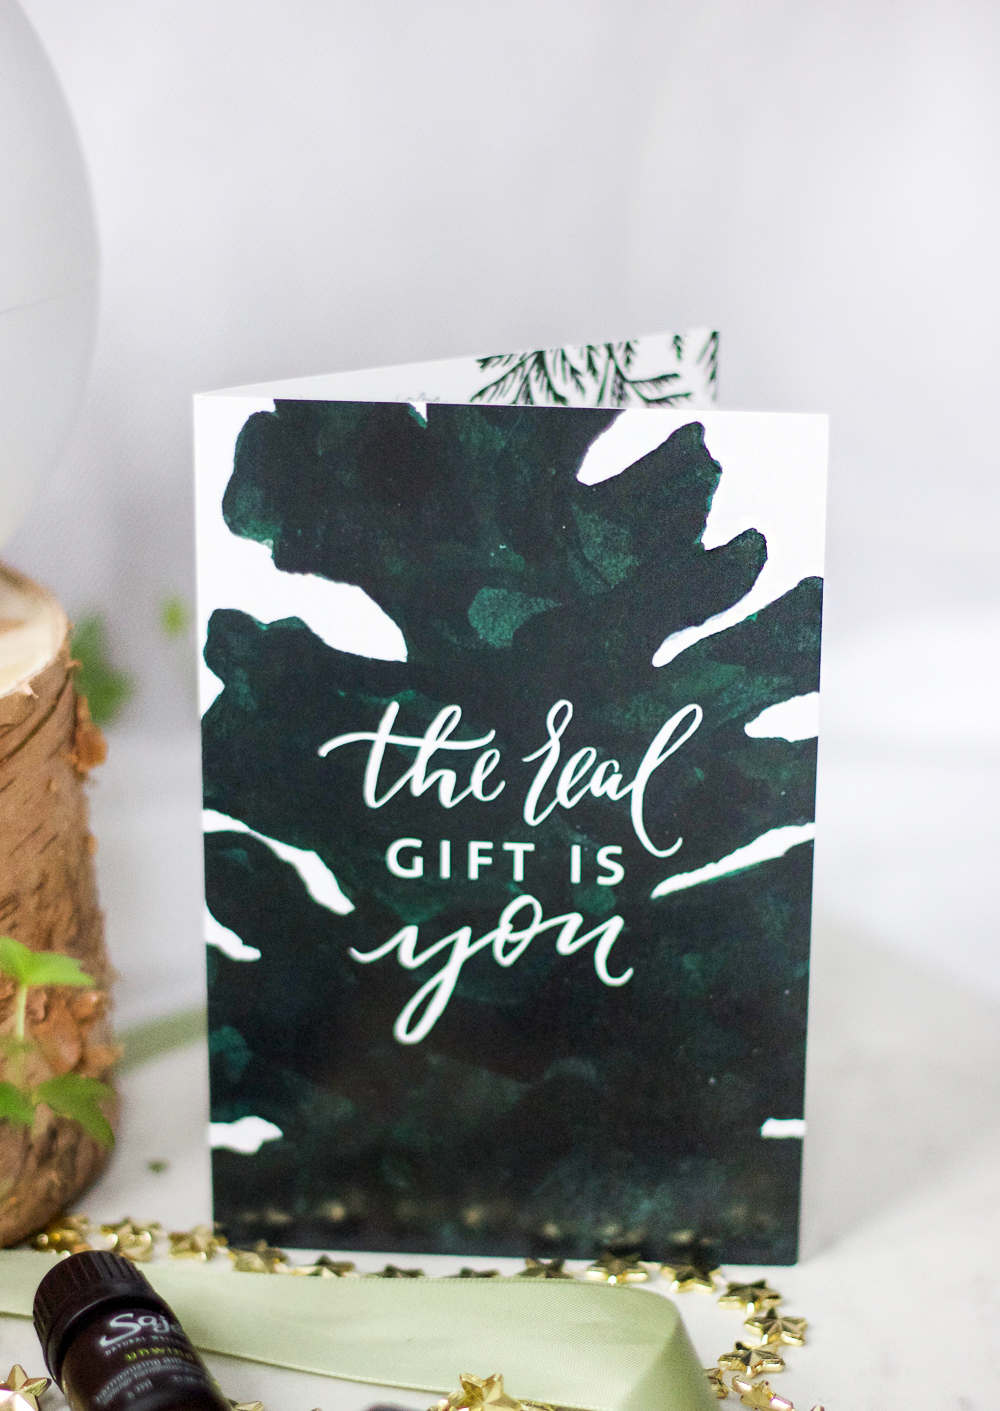 The Real Gift Is You - Saje Natural Wellness Holiday Gift ideas